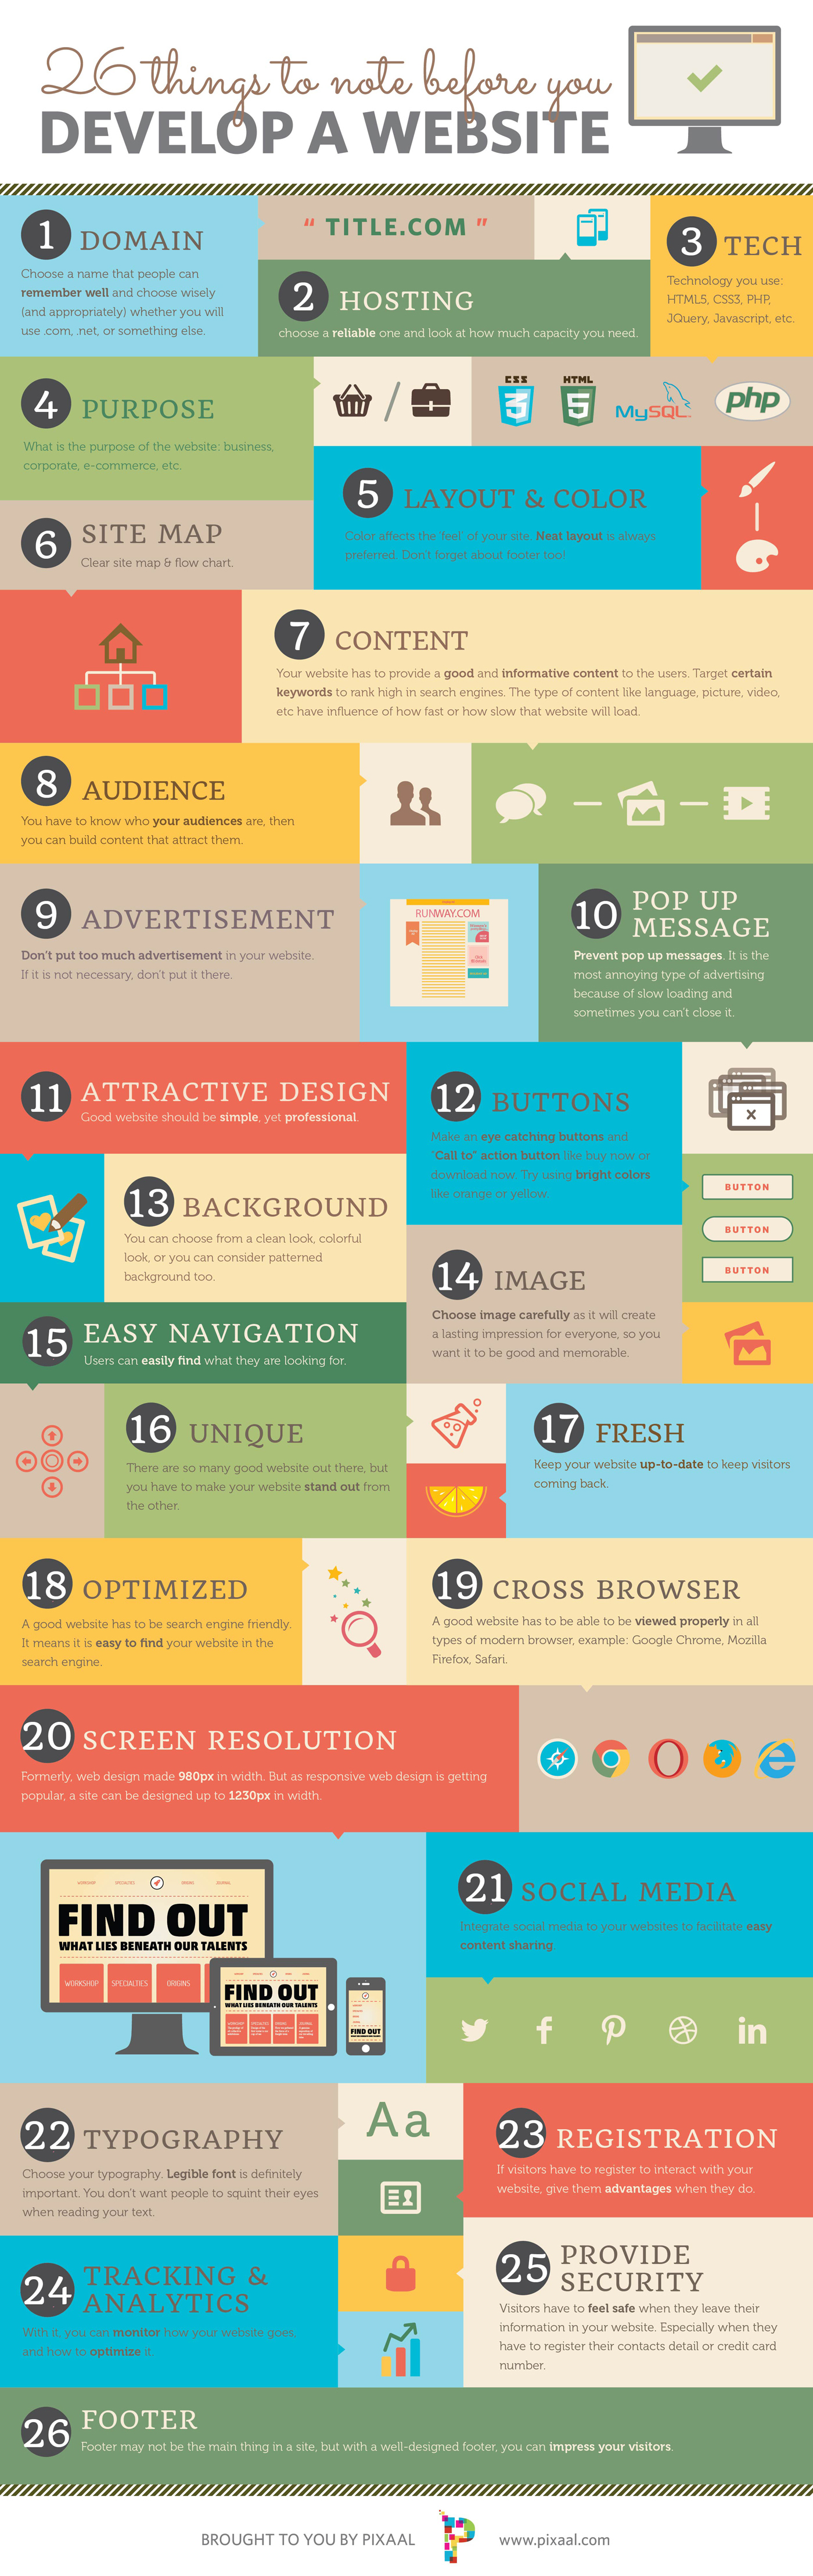 26-Things-To-Consider-Before-Developing-A-Website